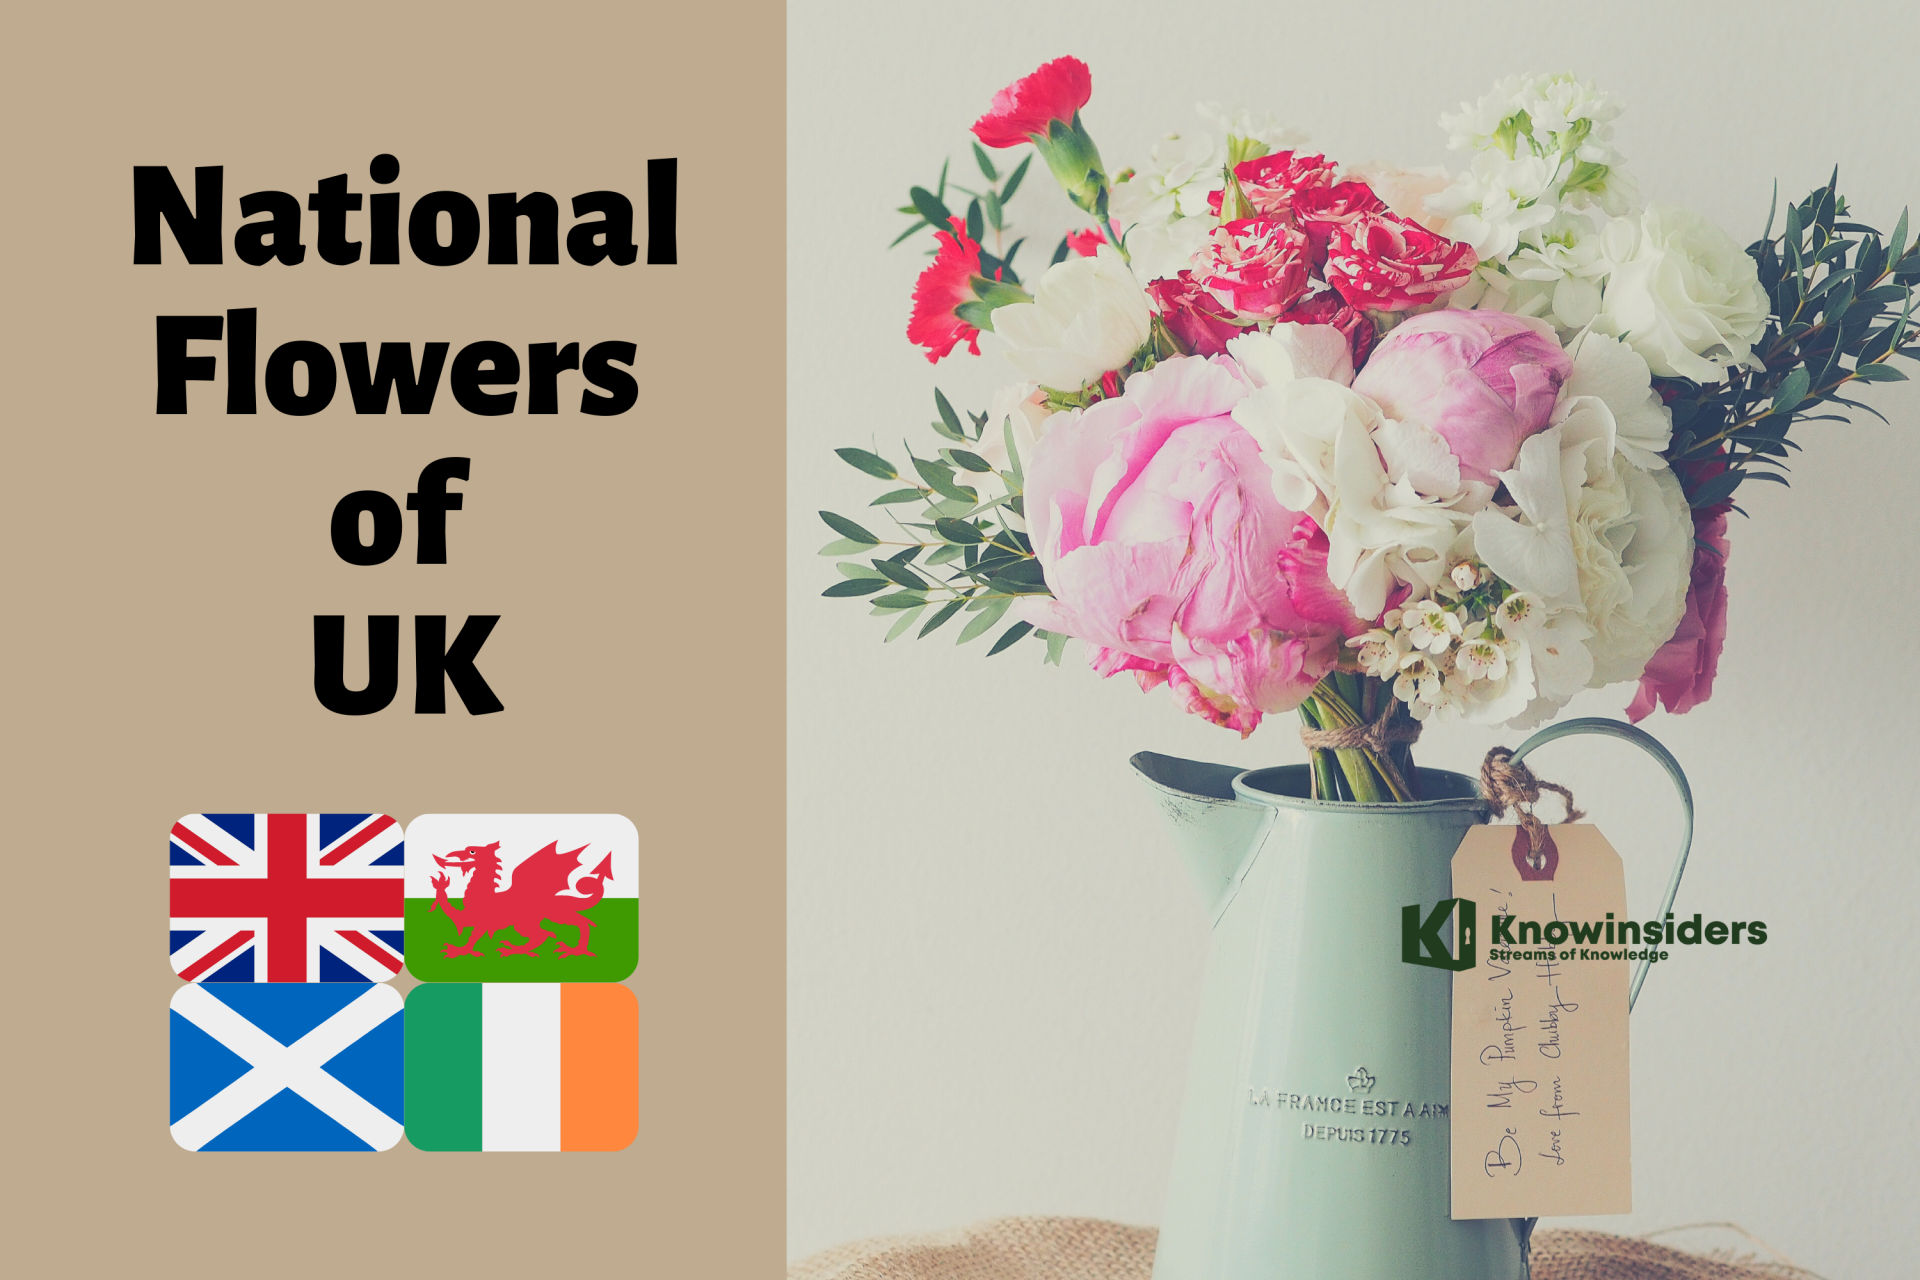 What are the National Flowers of UK?